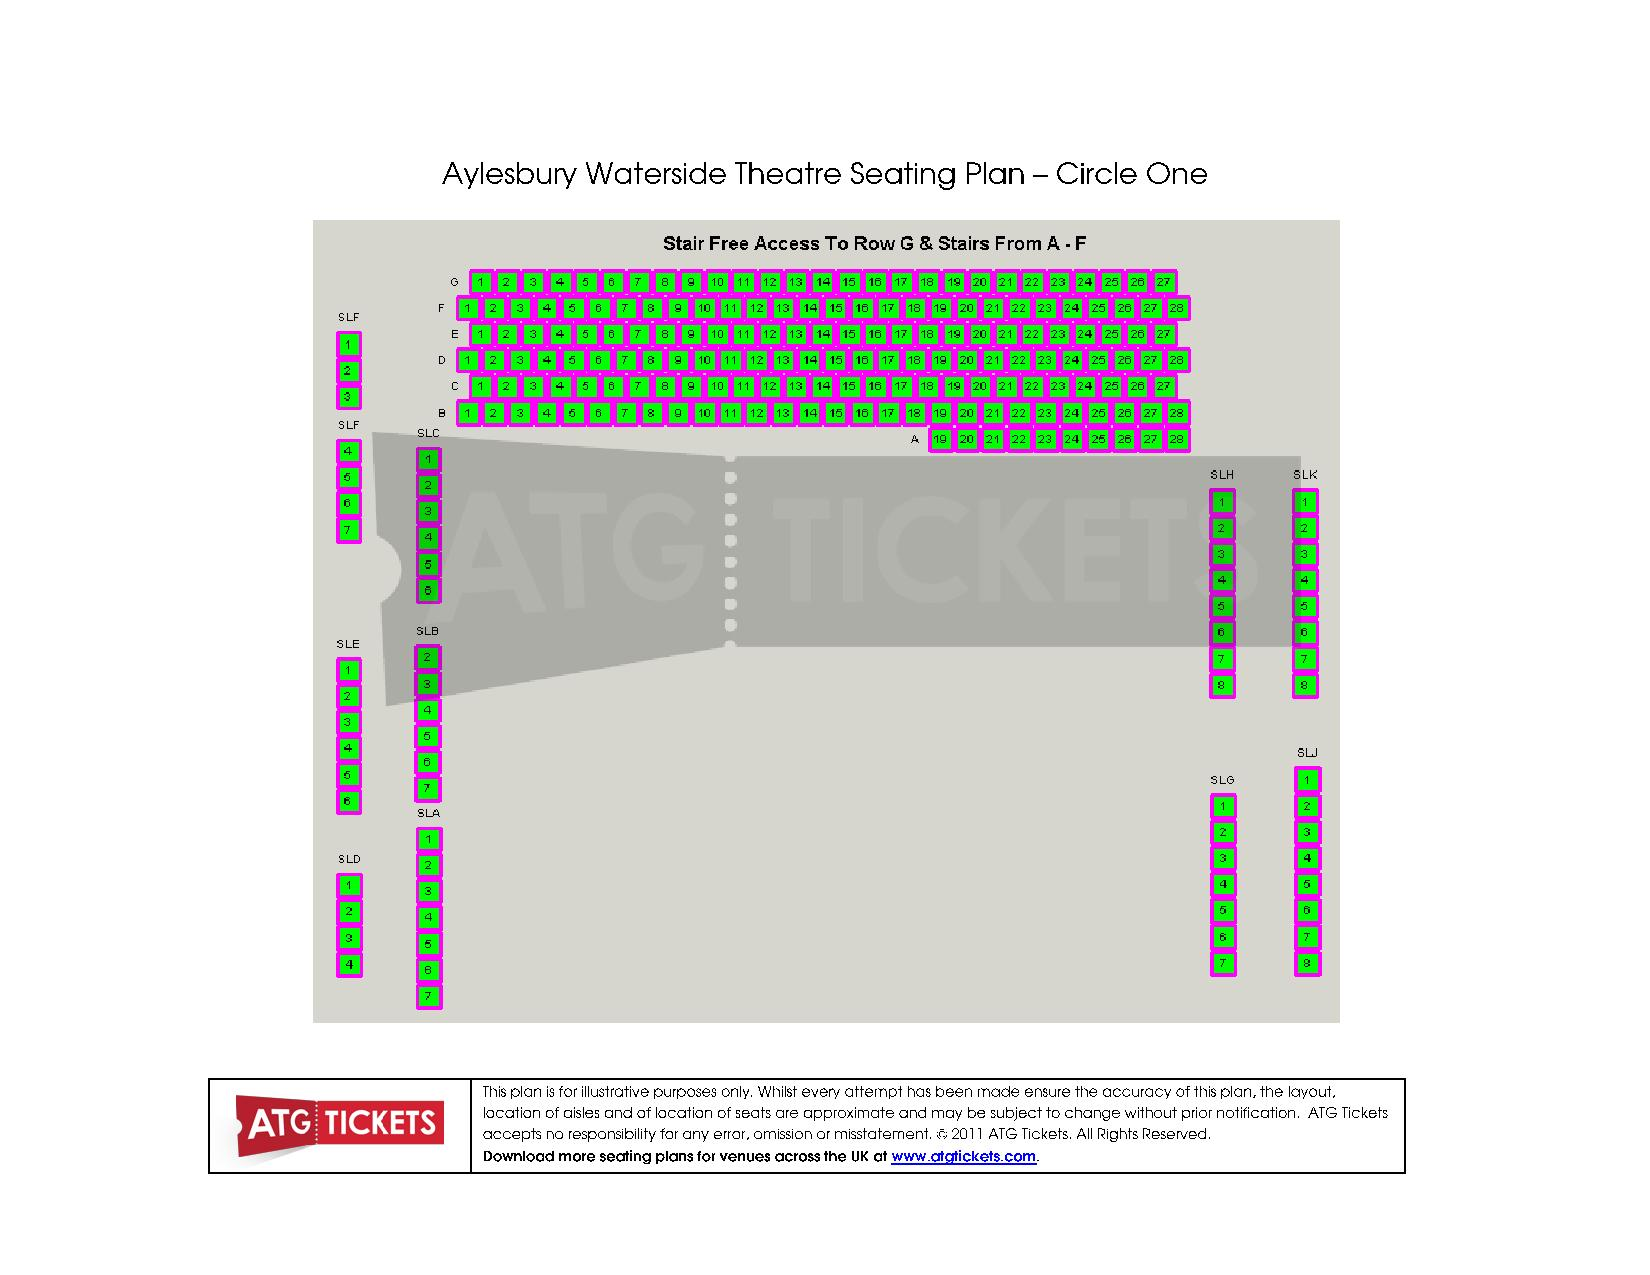 Aylesbury Theatre Seating Plan Circle